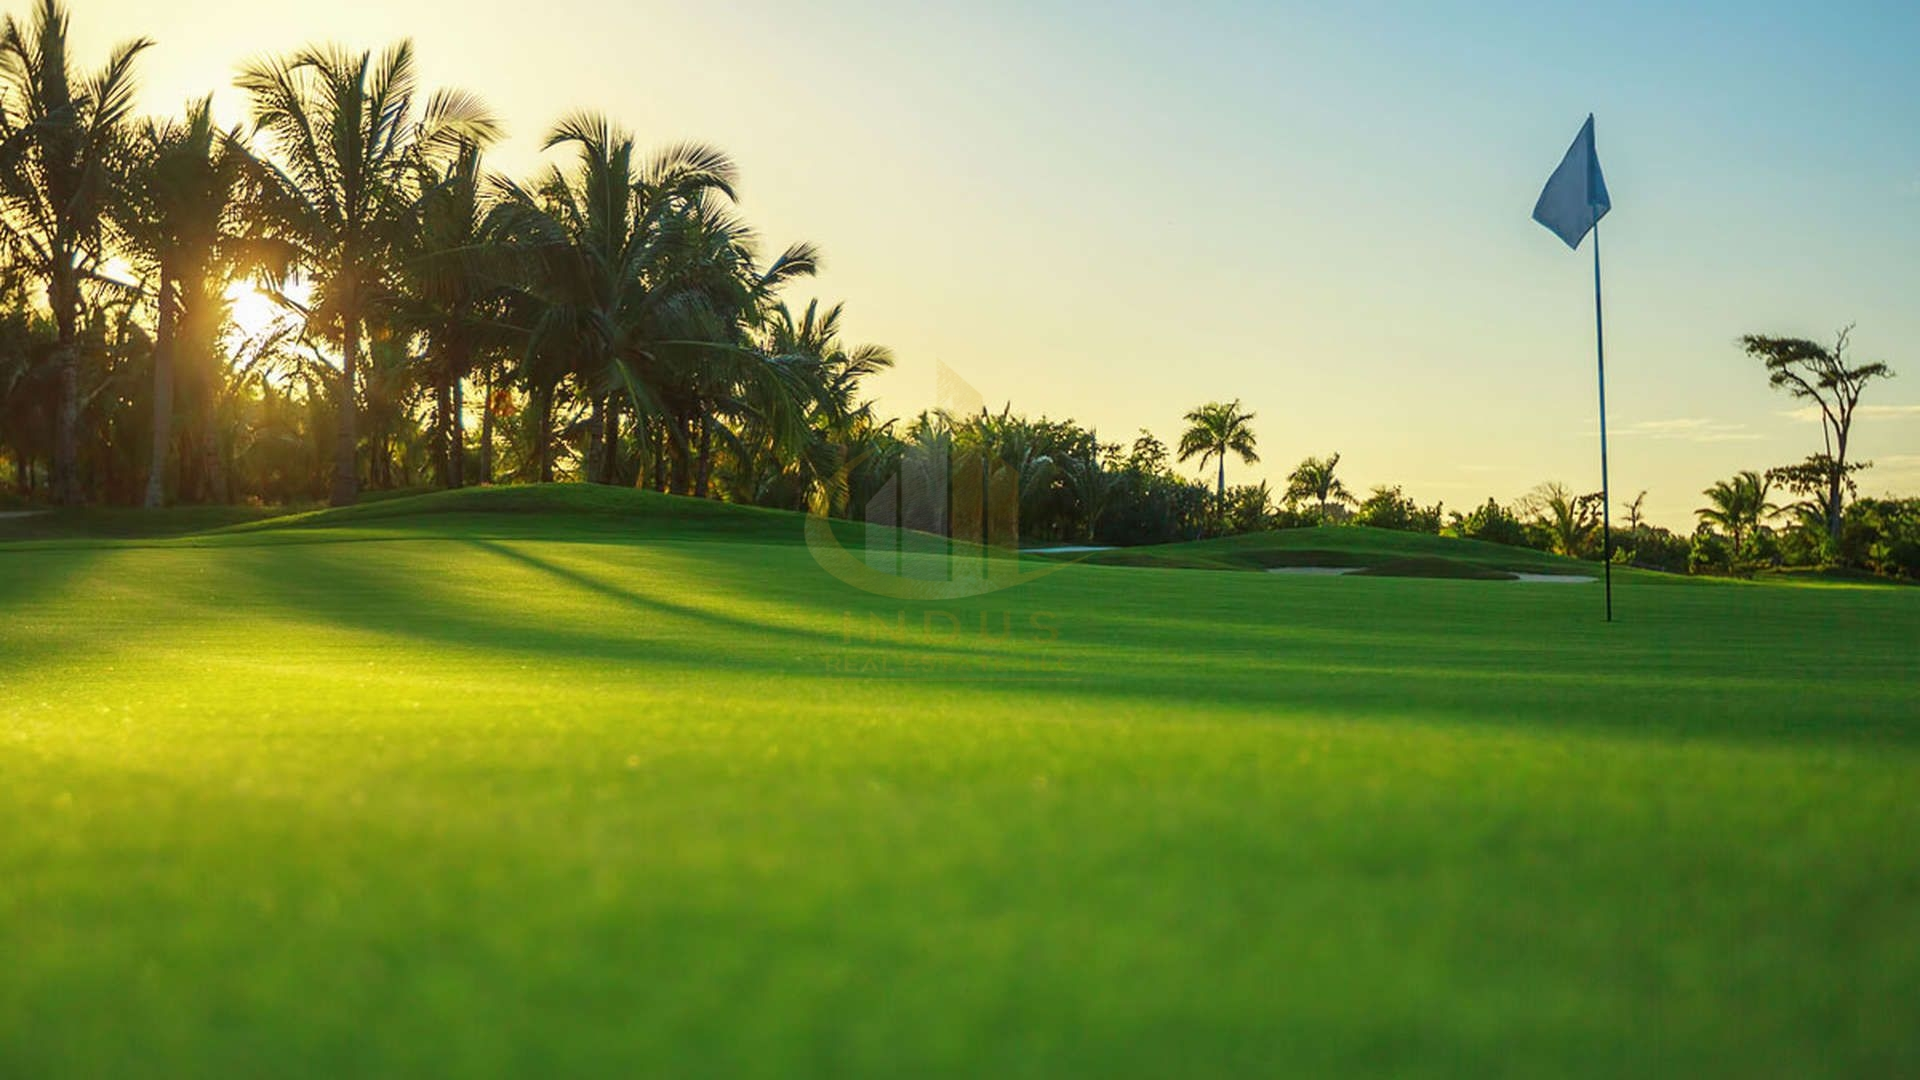 Homes with scenic views of golf course - A Prime Spot | Offplan Golf Suites DHE View